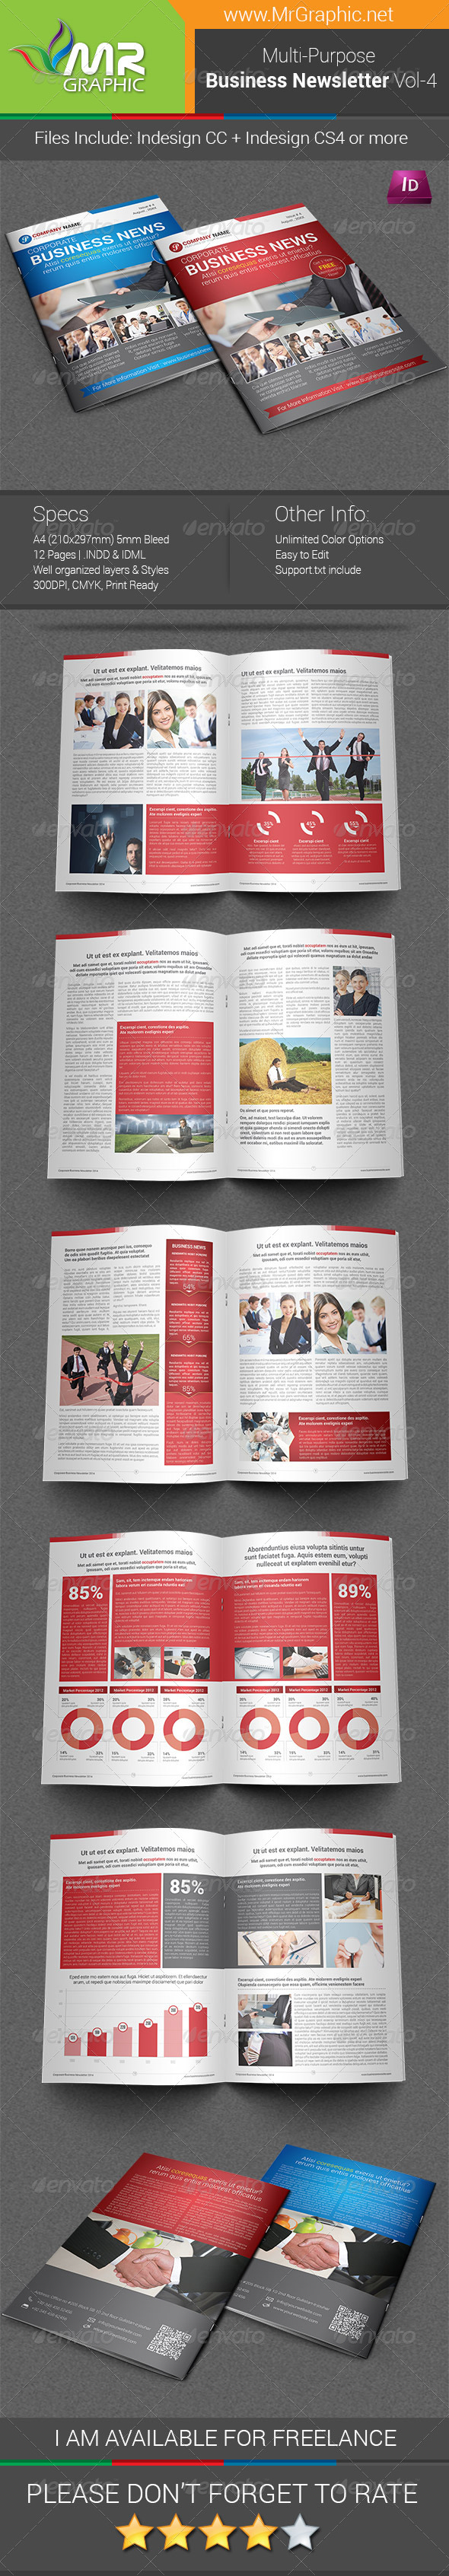 GraphicRiver Multipurpose Business Newsletter Template Vol-04 7946659